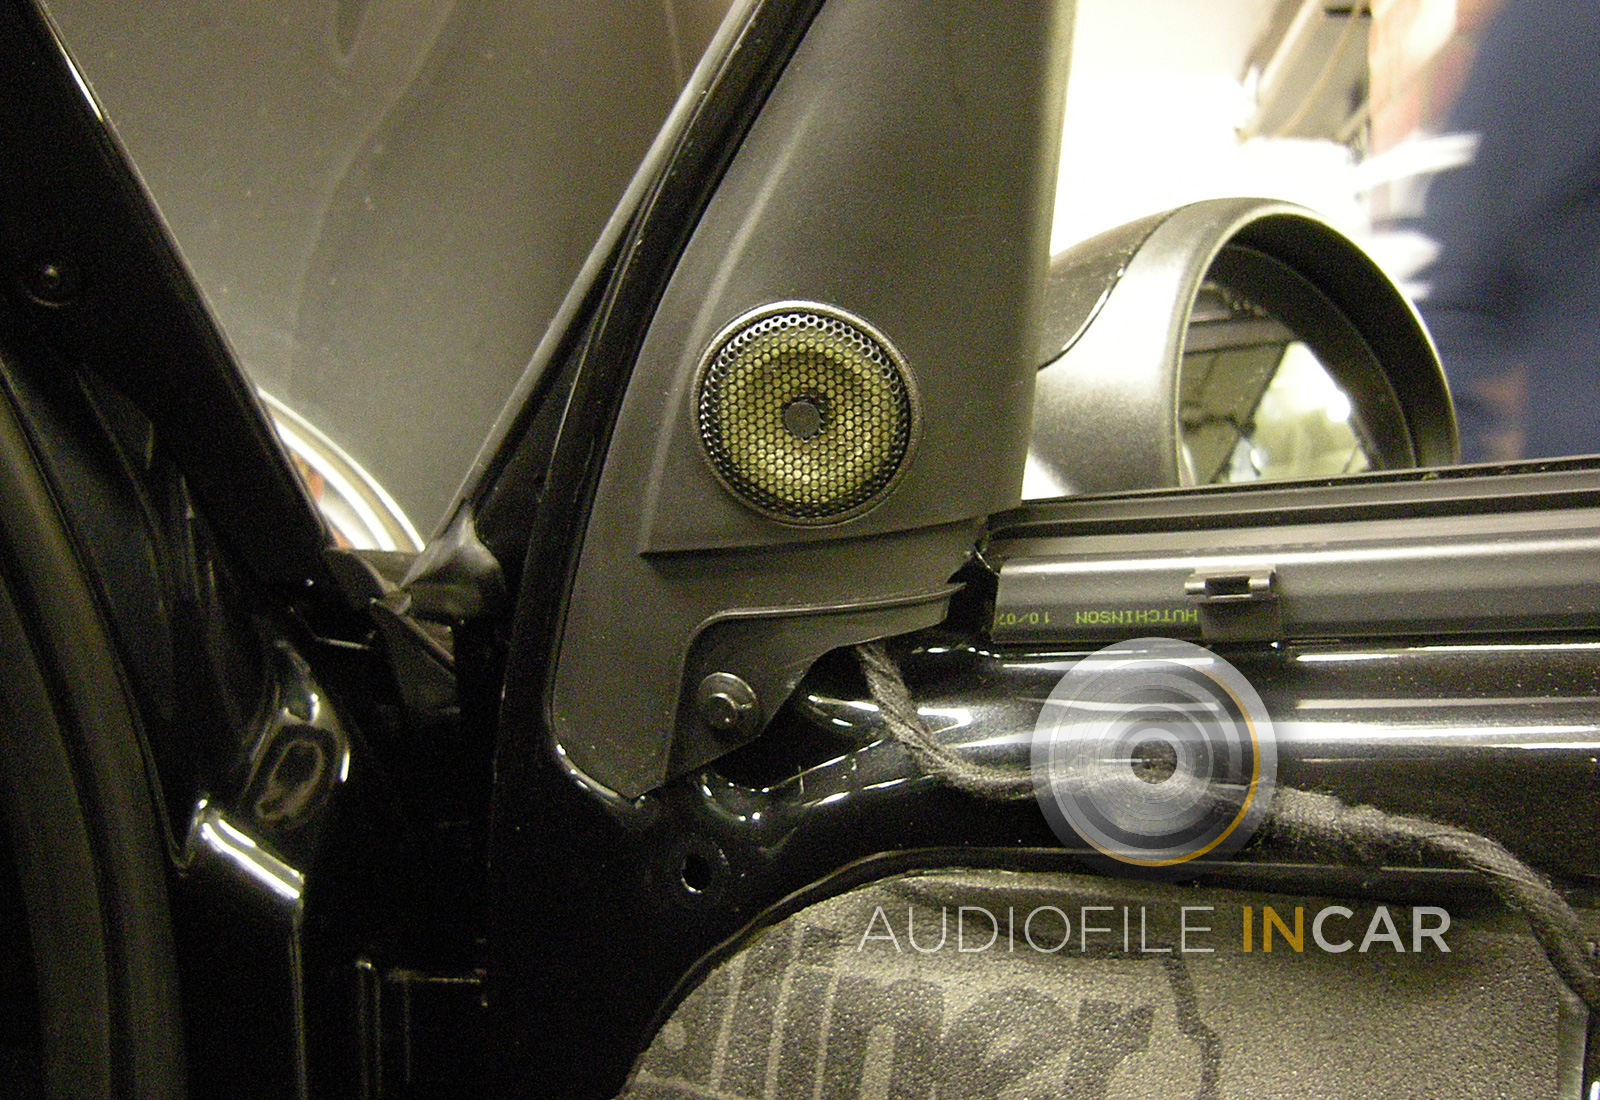 The Focal tweeter set into the re-finished door triangle making it look like part of the moulding, we try to use the Focal tweeter grill where possible as it allows for better dispersion.